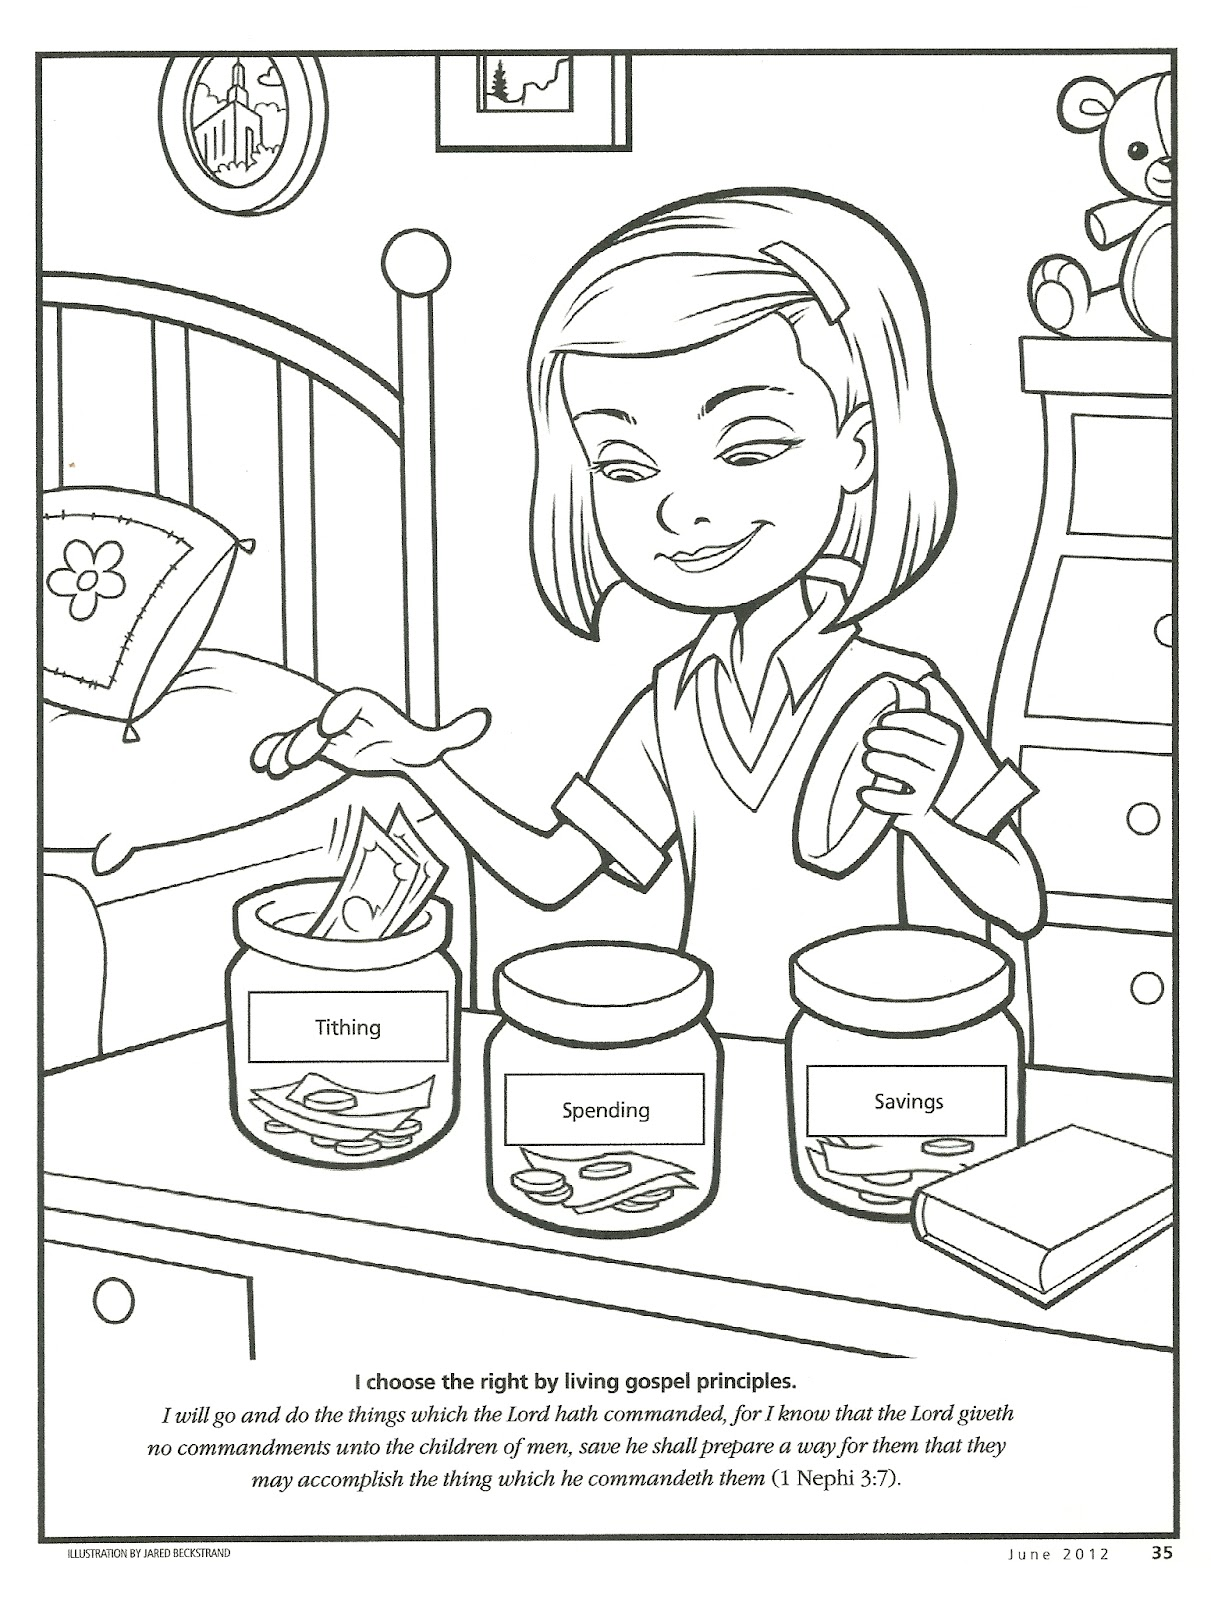 integrity coloring pages - happy clean living primary 2 lesson 33